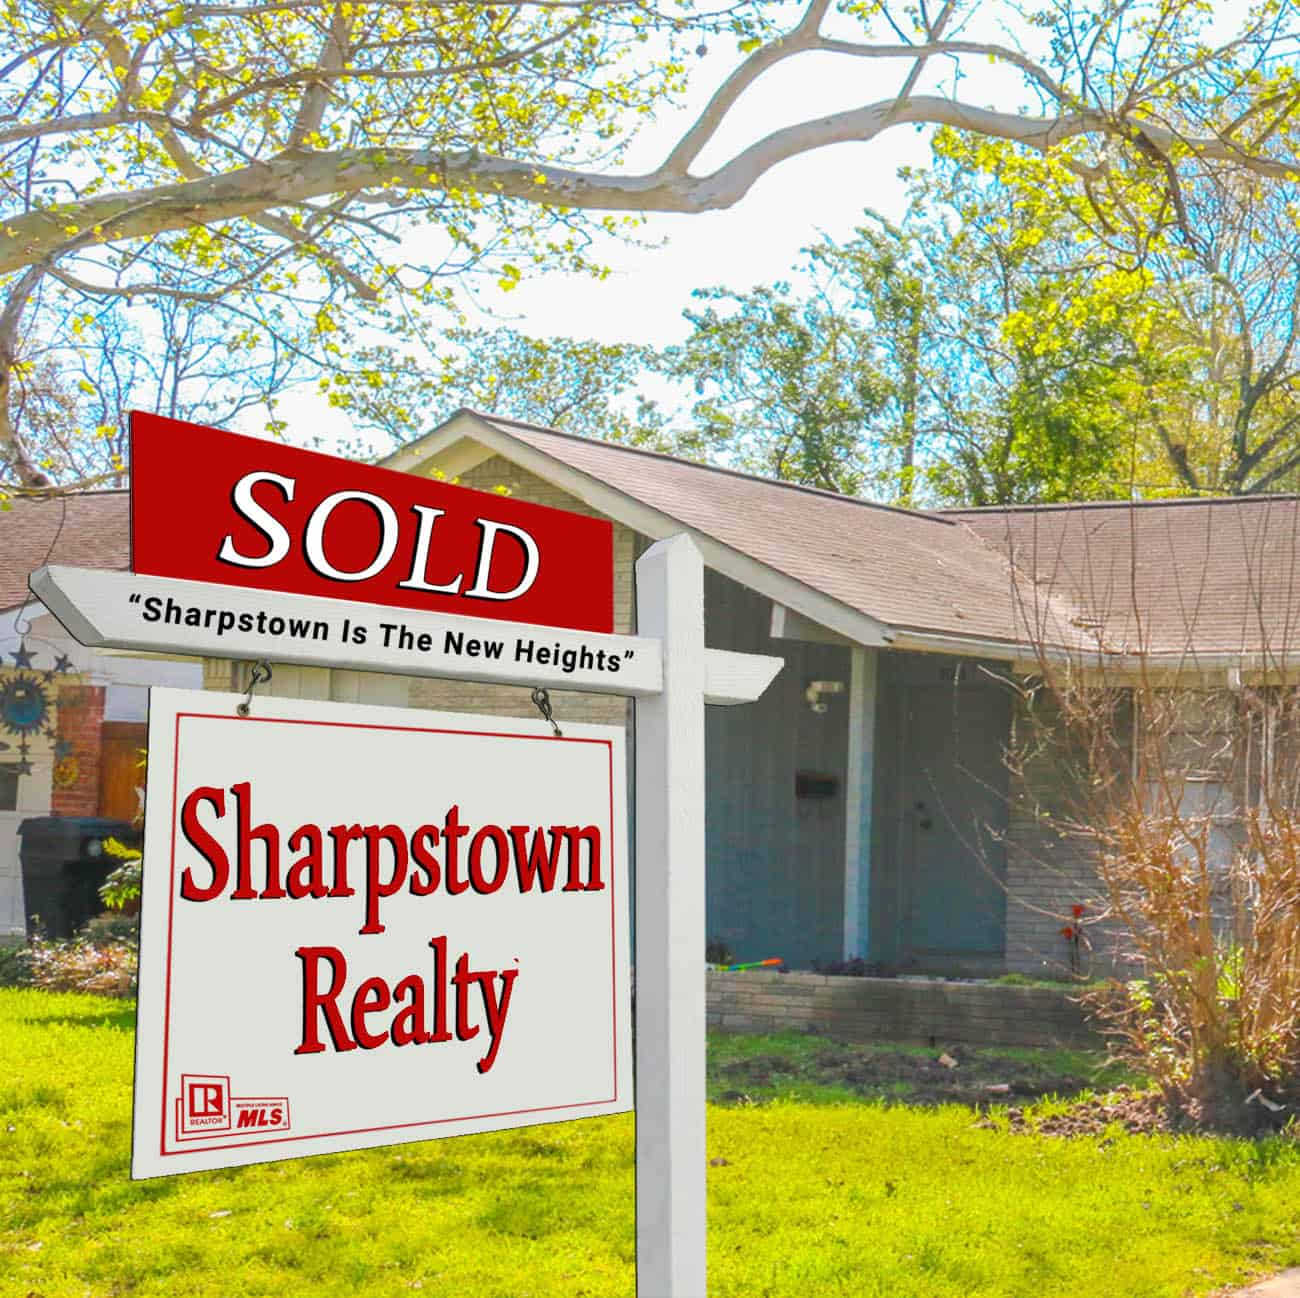 Sharpstown Realty sign